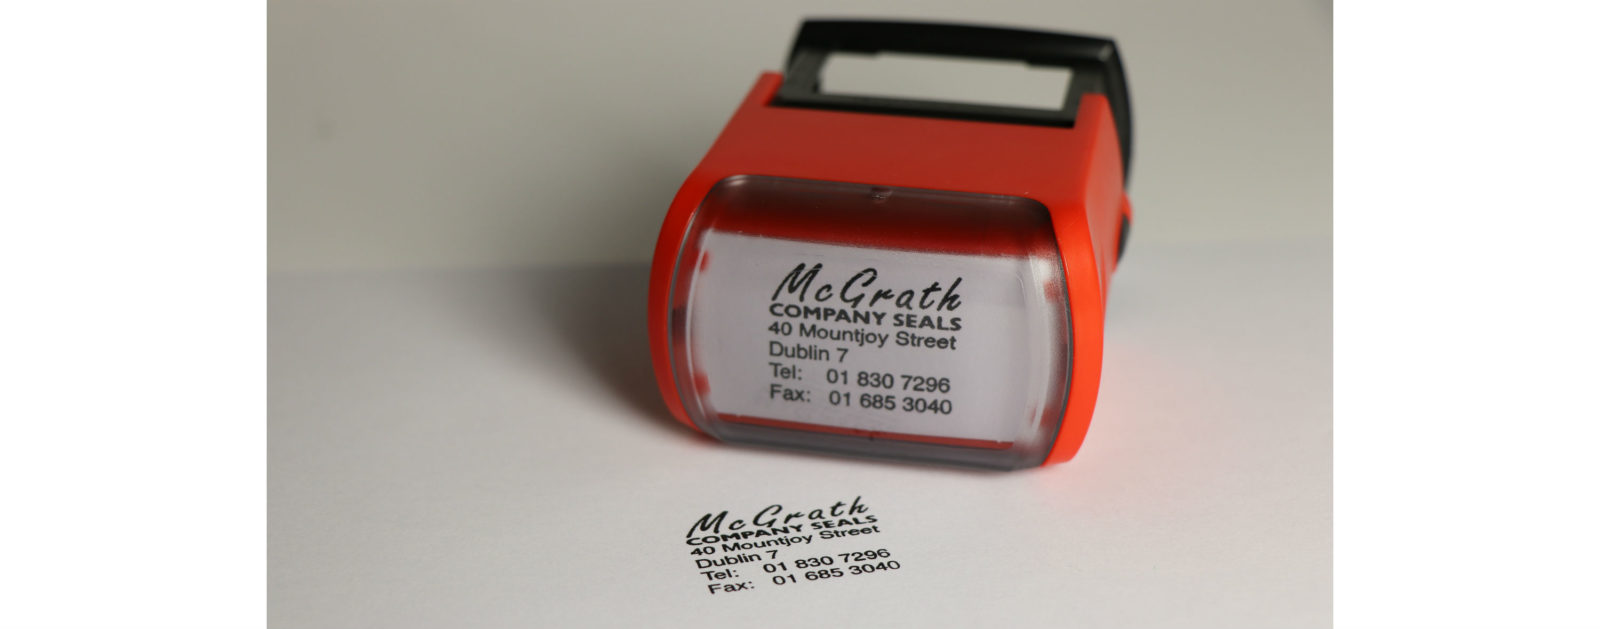 Rubber stamp for company tasks